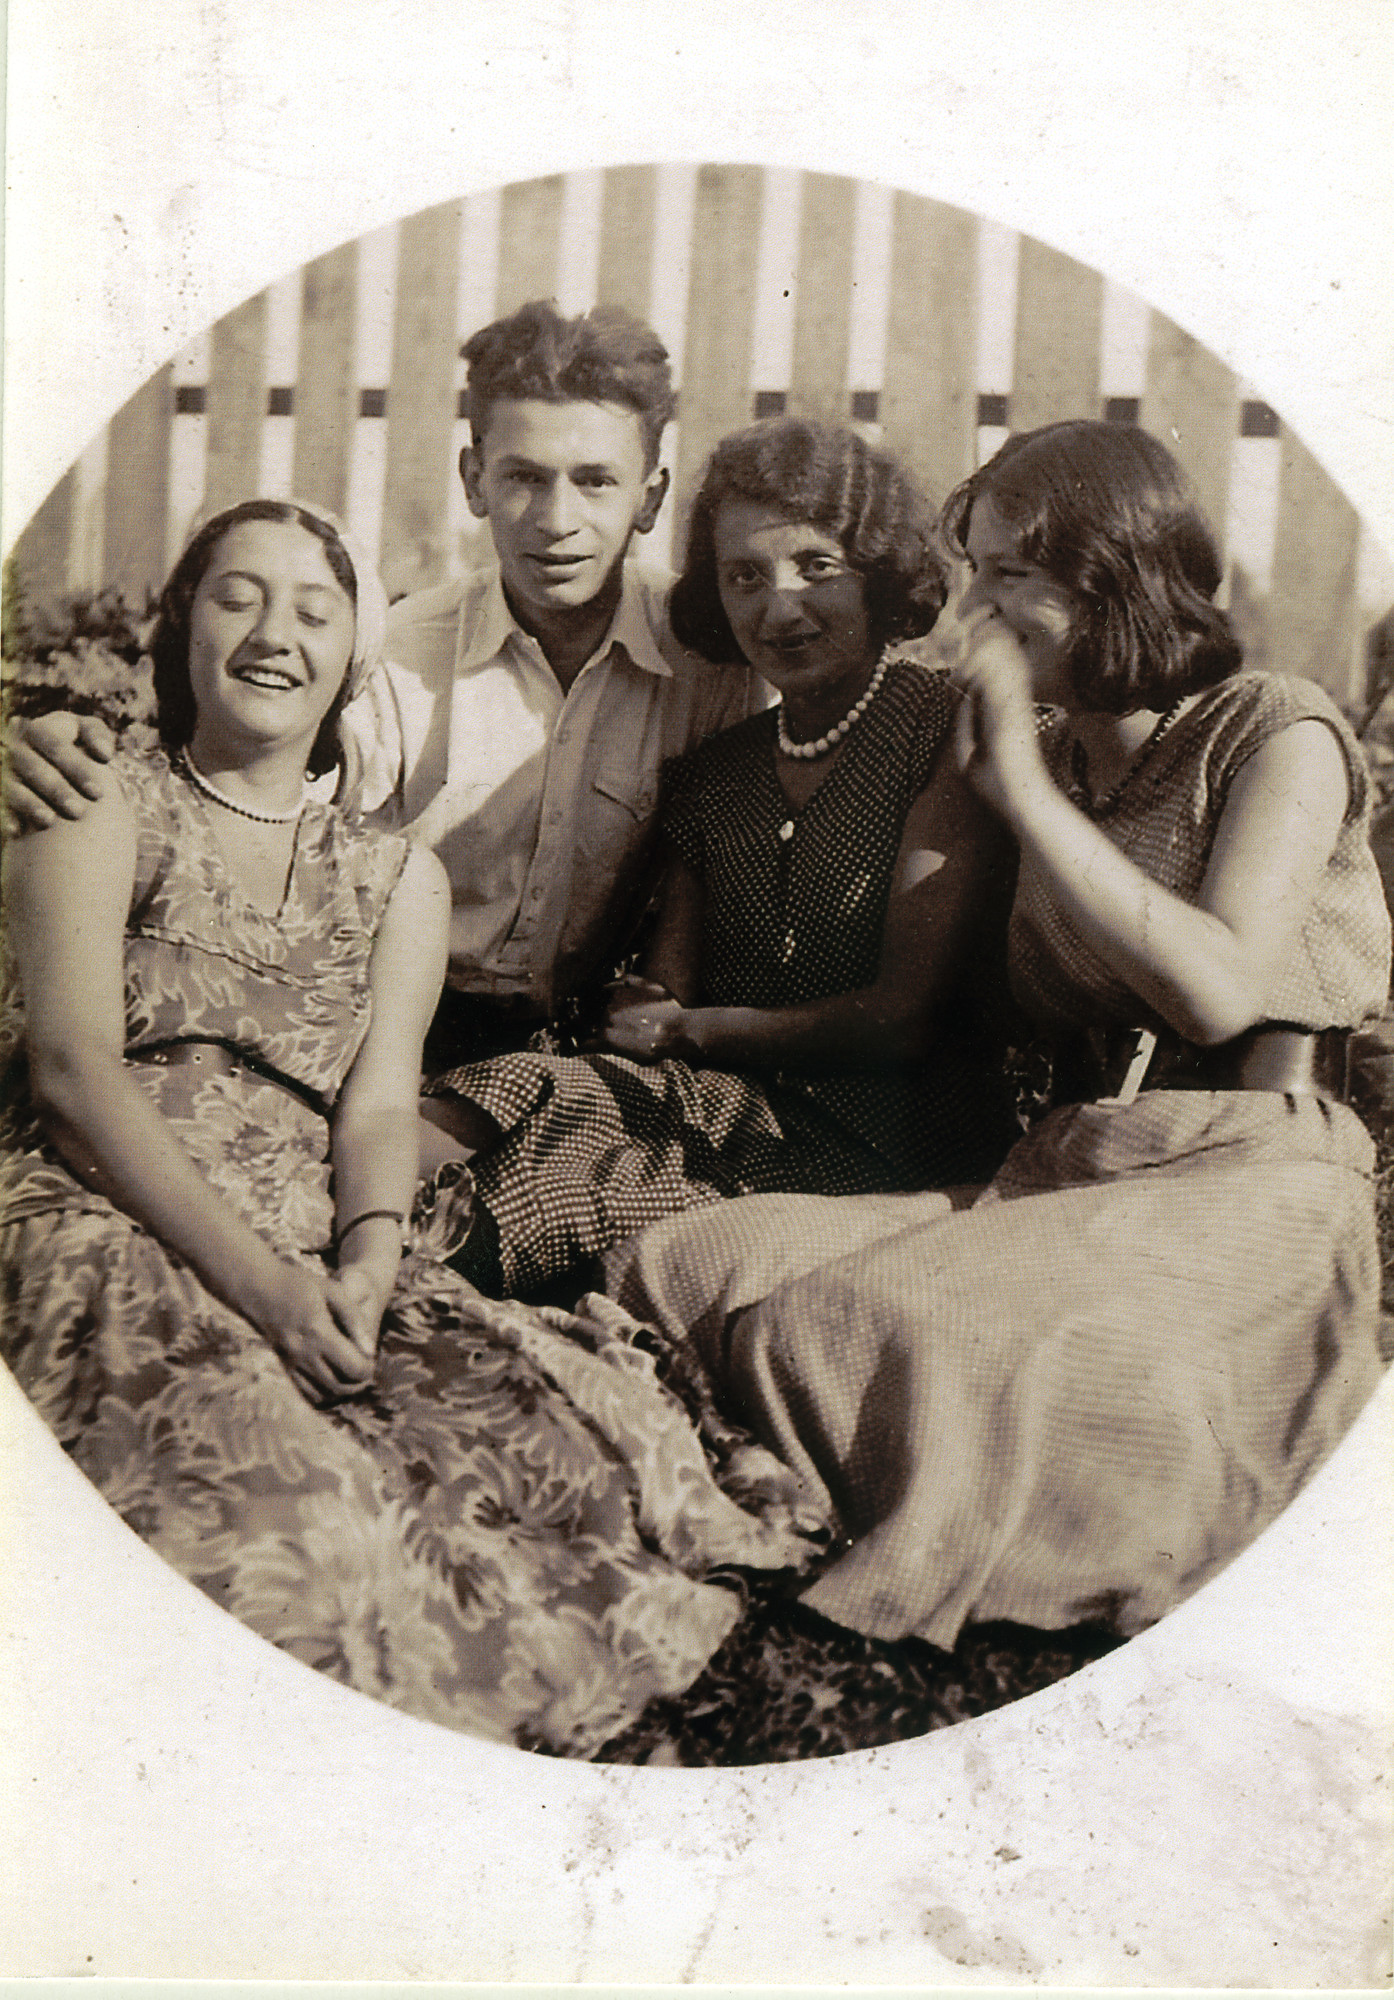 Riva and Dimo Szrajer (far left) sit outside with friends.